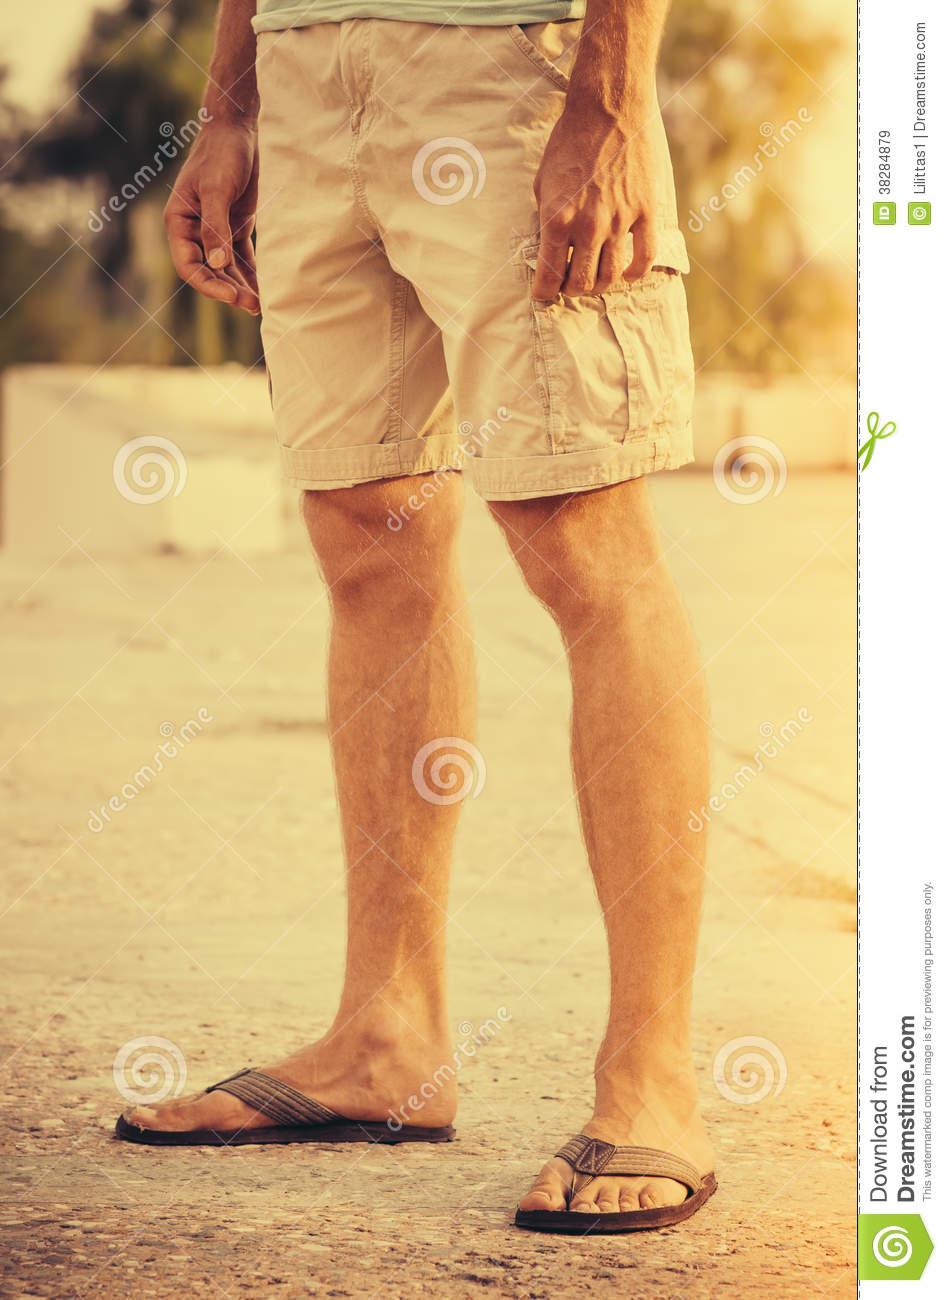 Pictures Of People With Flip Flops 93